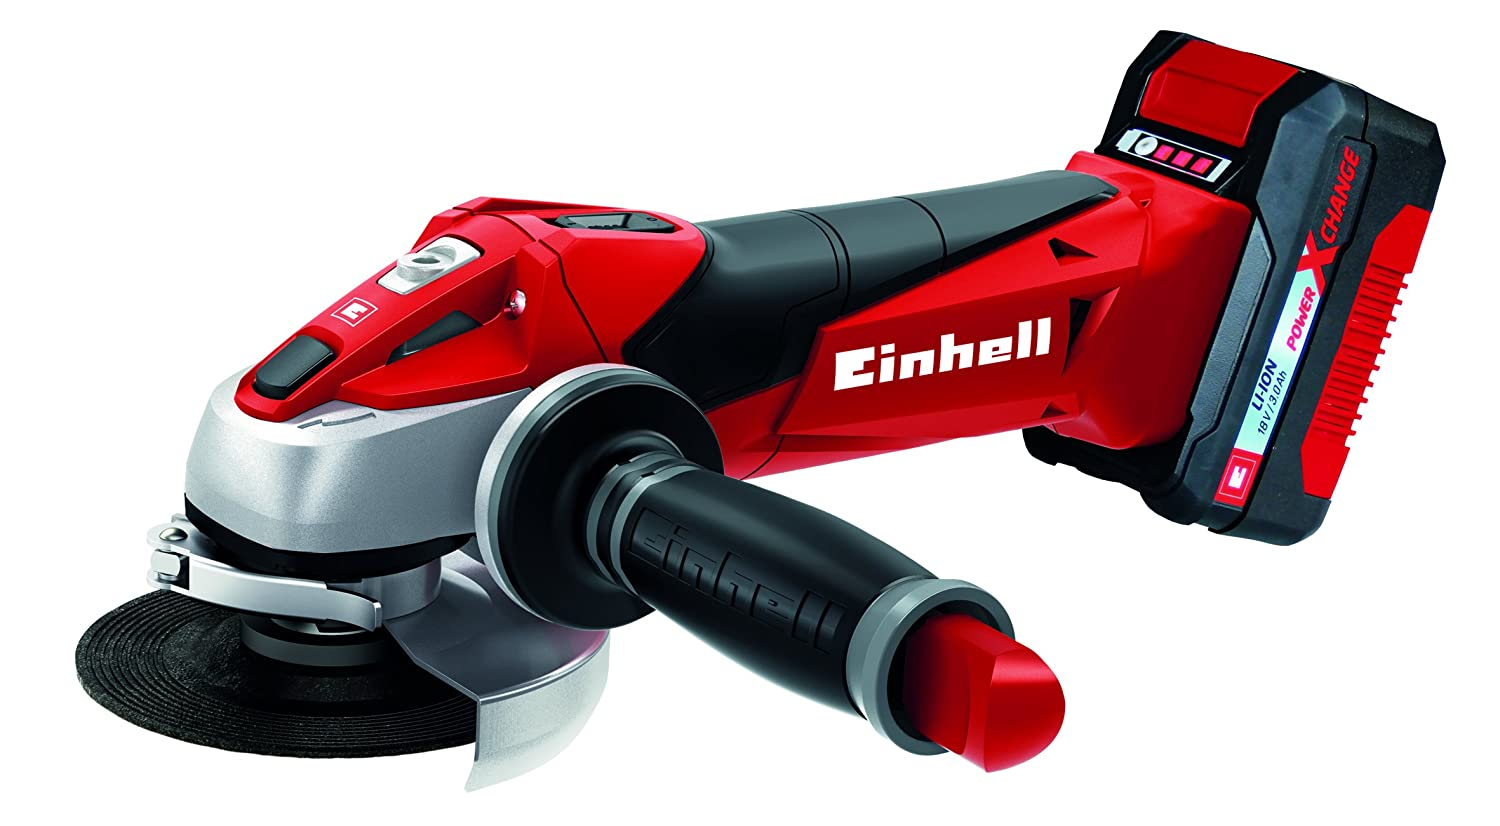 Einhell 4431119  Grinder (18  V, 115  mm, 8500  min-1, Includes Battery and Fast Charger), Red 115 mm 8500 min-1